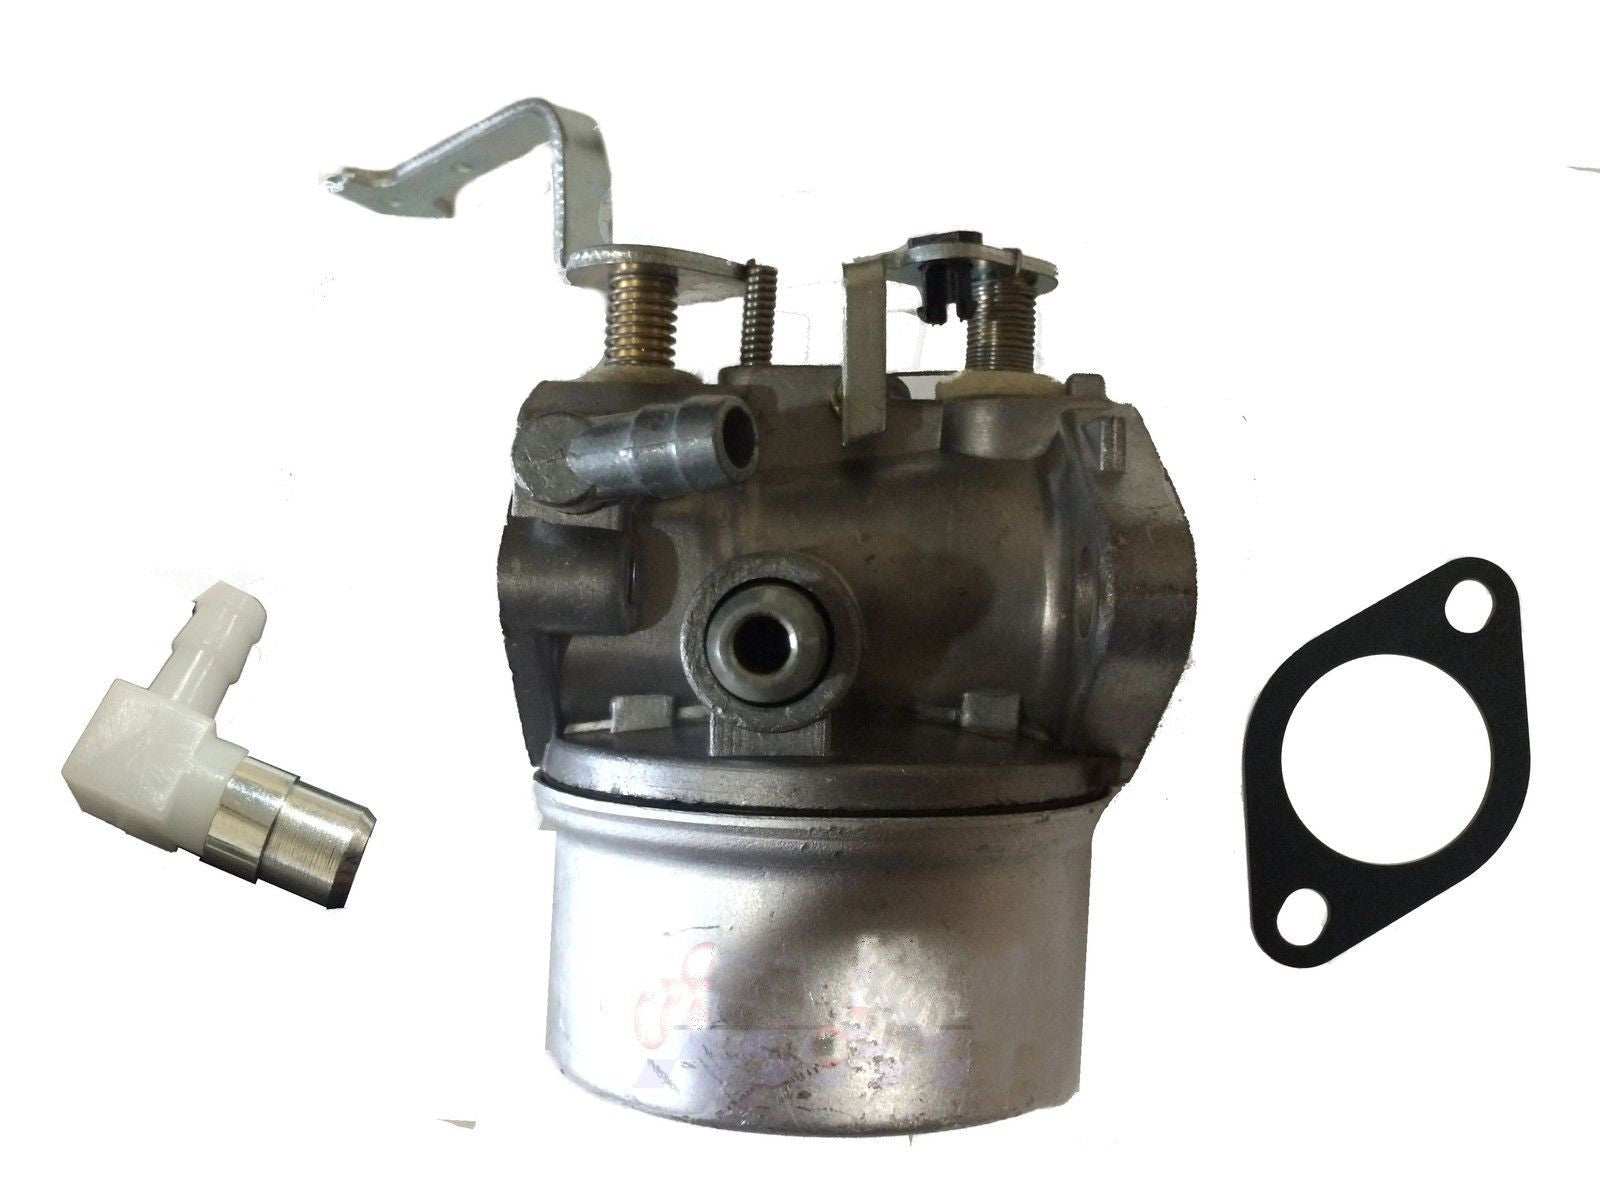 CARBURETOR FOR TECUMSEH 640260 HM80 HM90 HM100 with FREE GASKET NEW 640260A - AE-Power